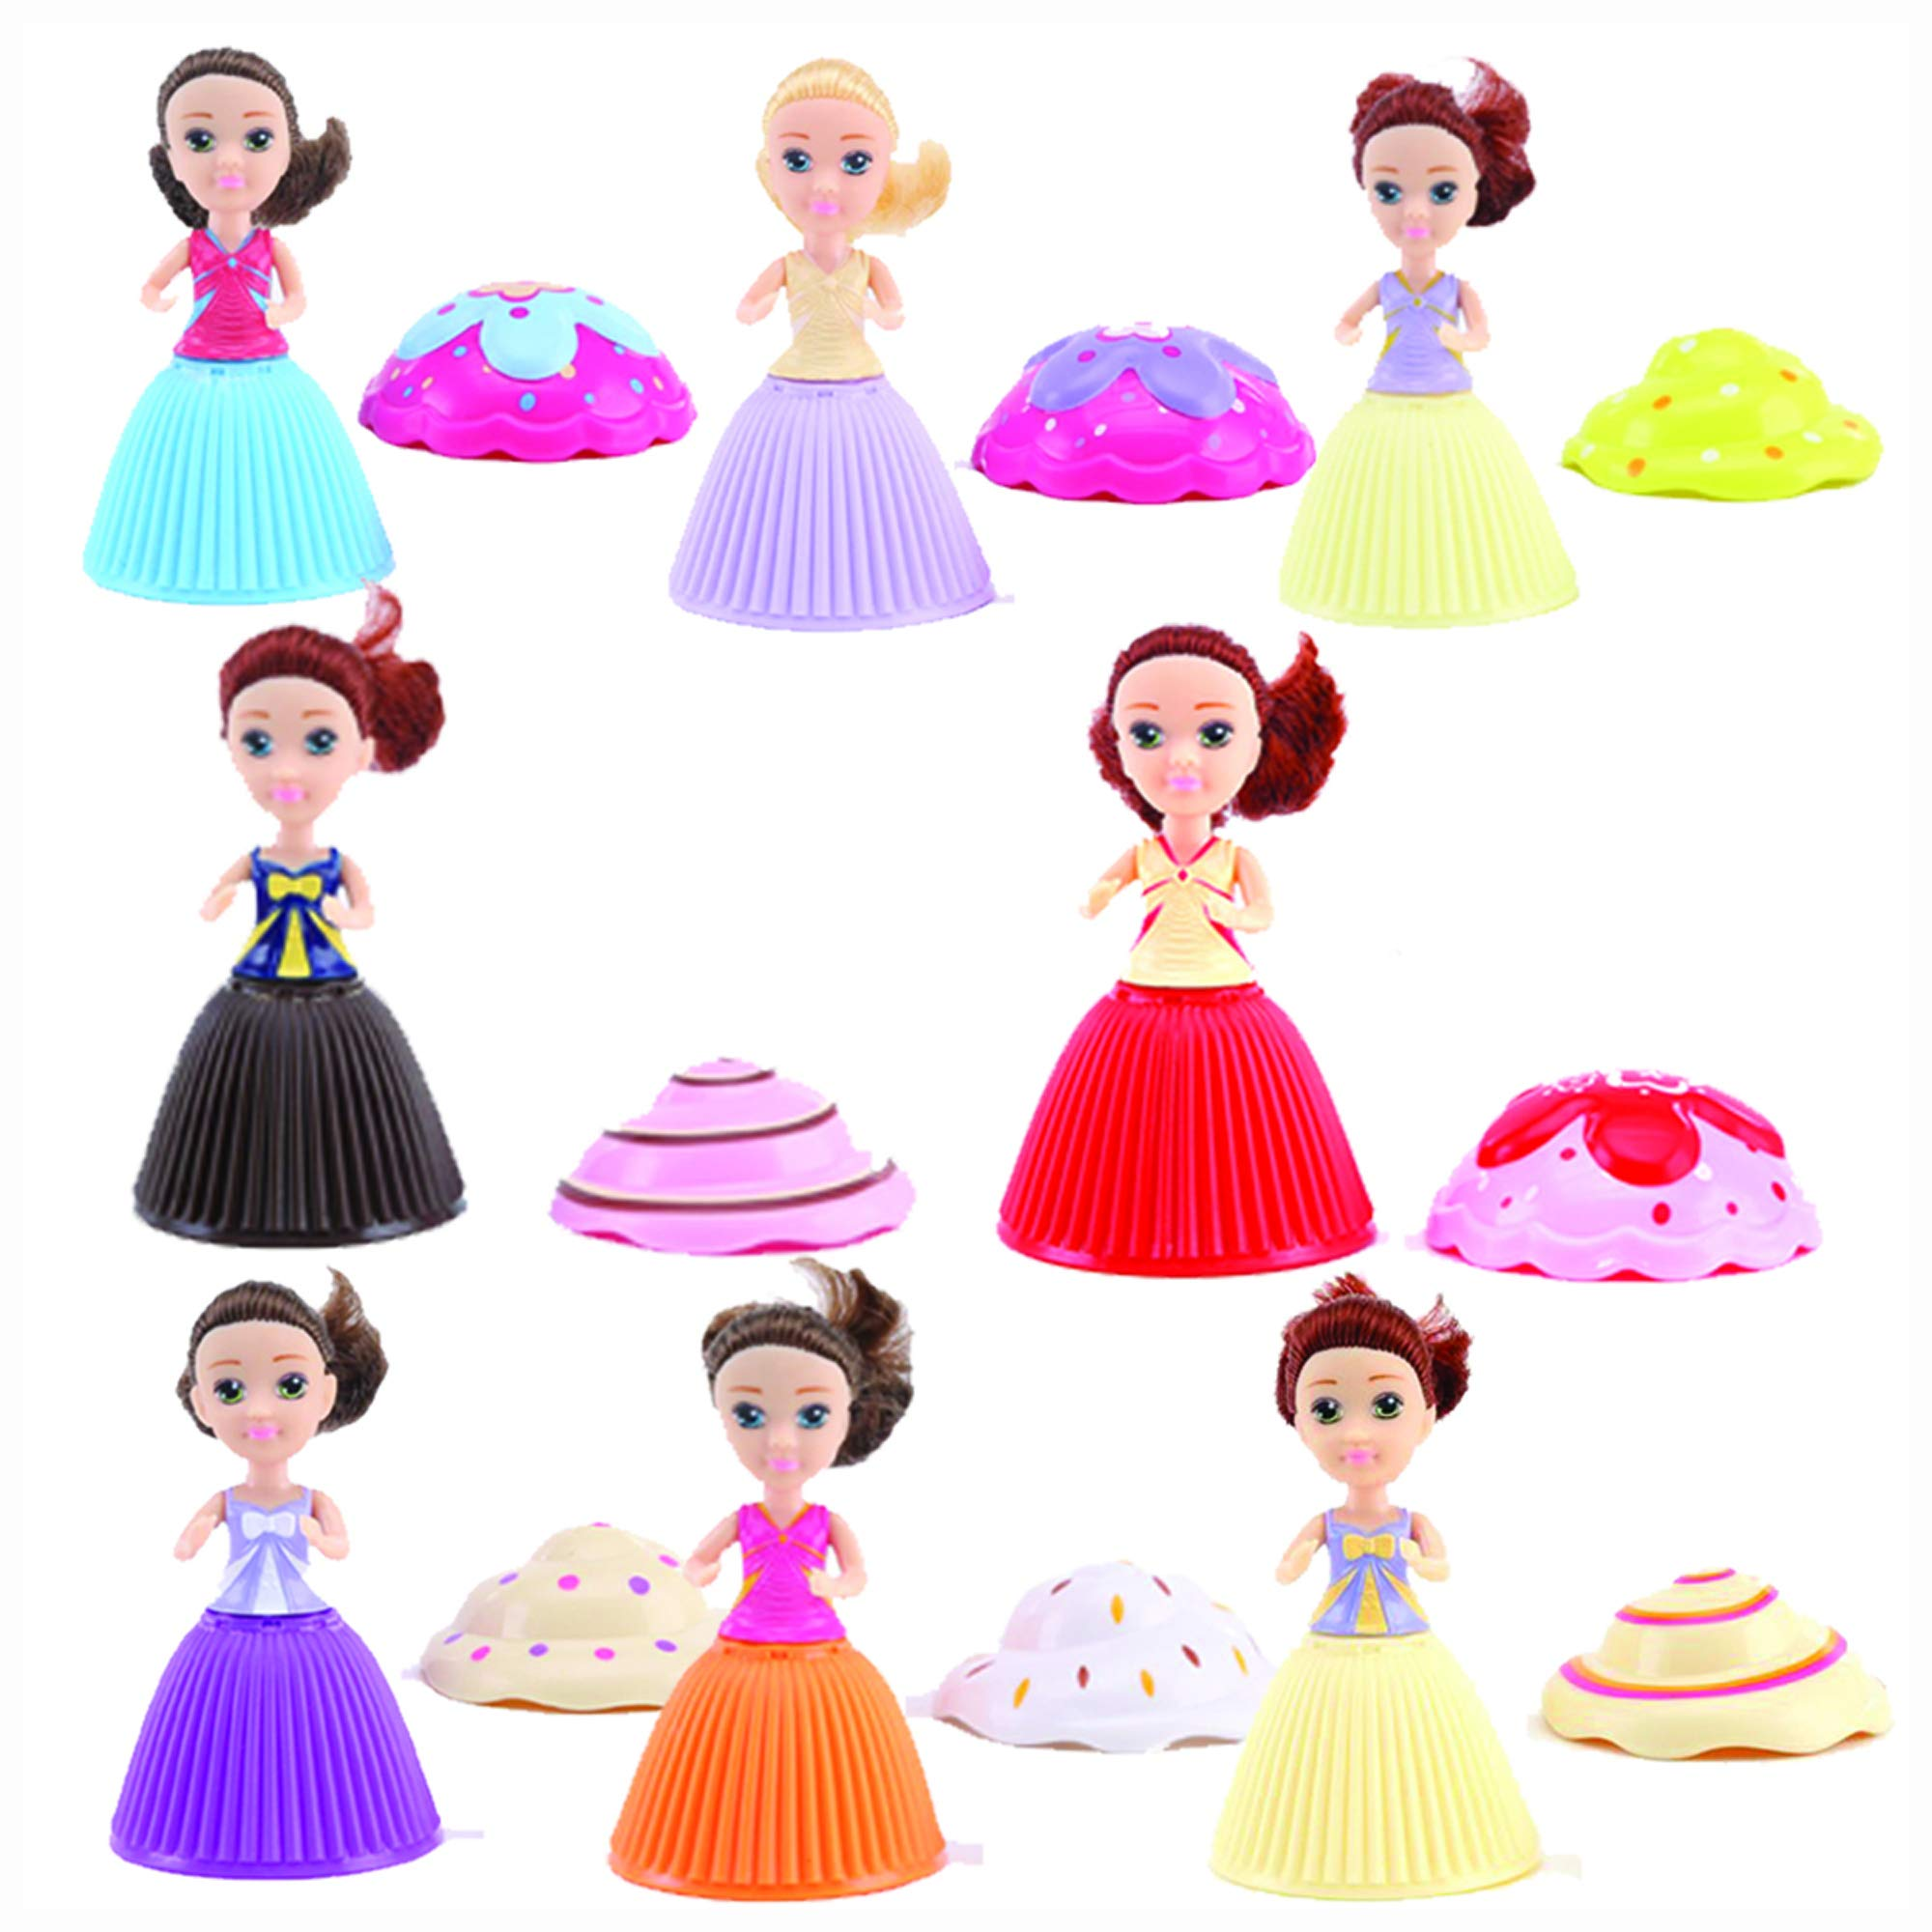 Evursua 2 Pack Scented Cupcake Dolls Toys with Surprise,Reversible Cake Transform to Mini Princess Doll (2 Pack)